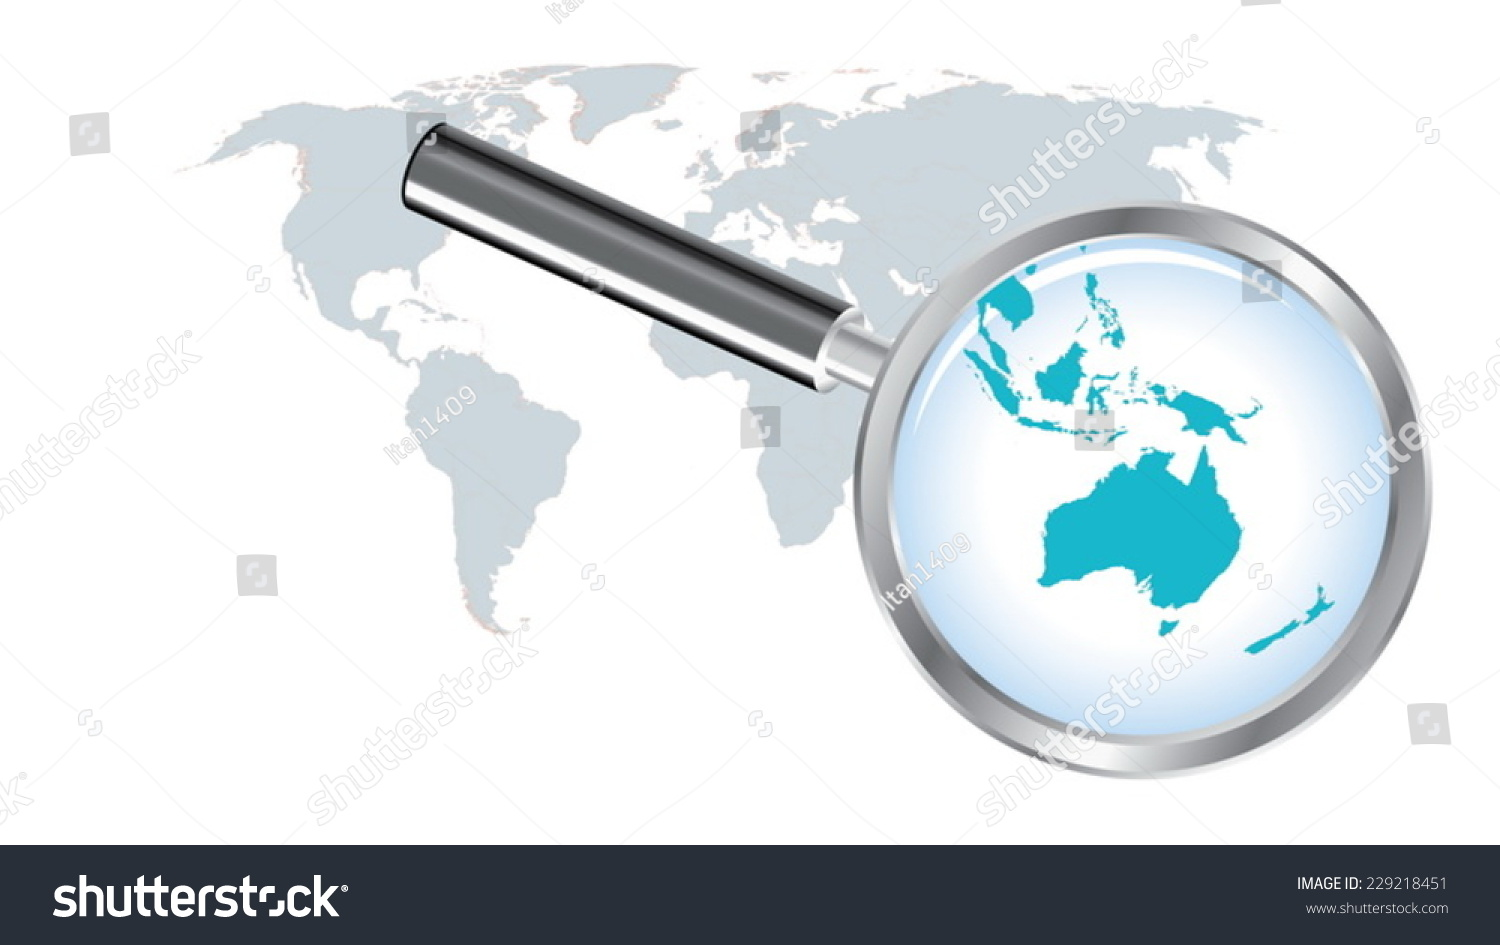 world map countries with australia magnified by loupe